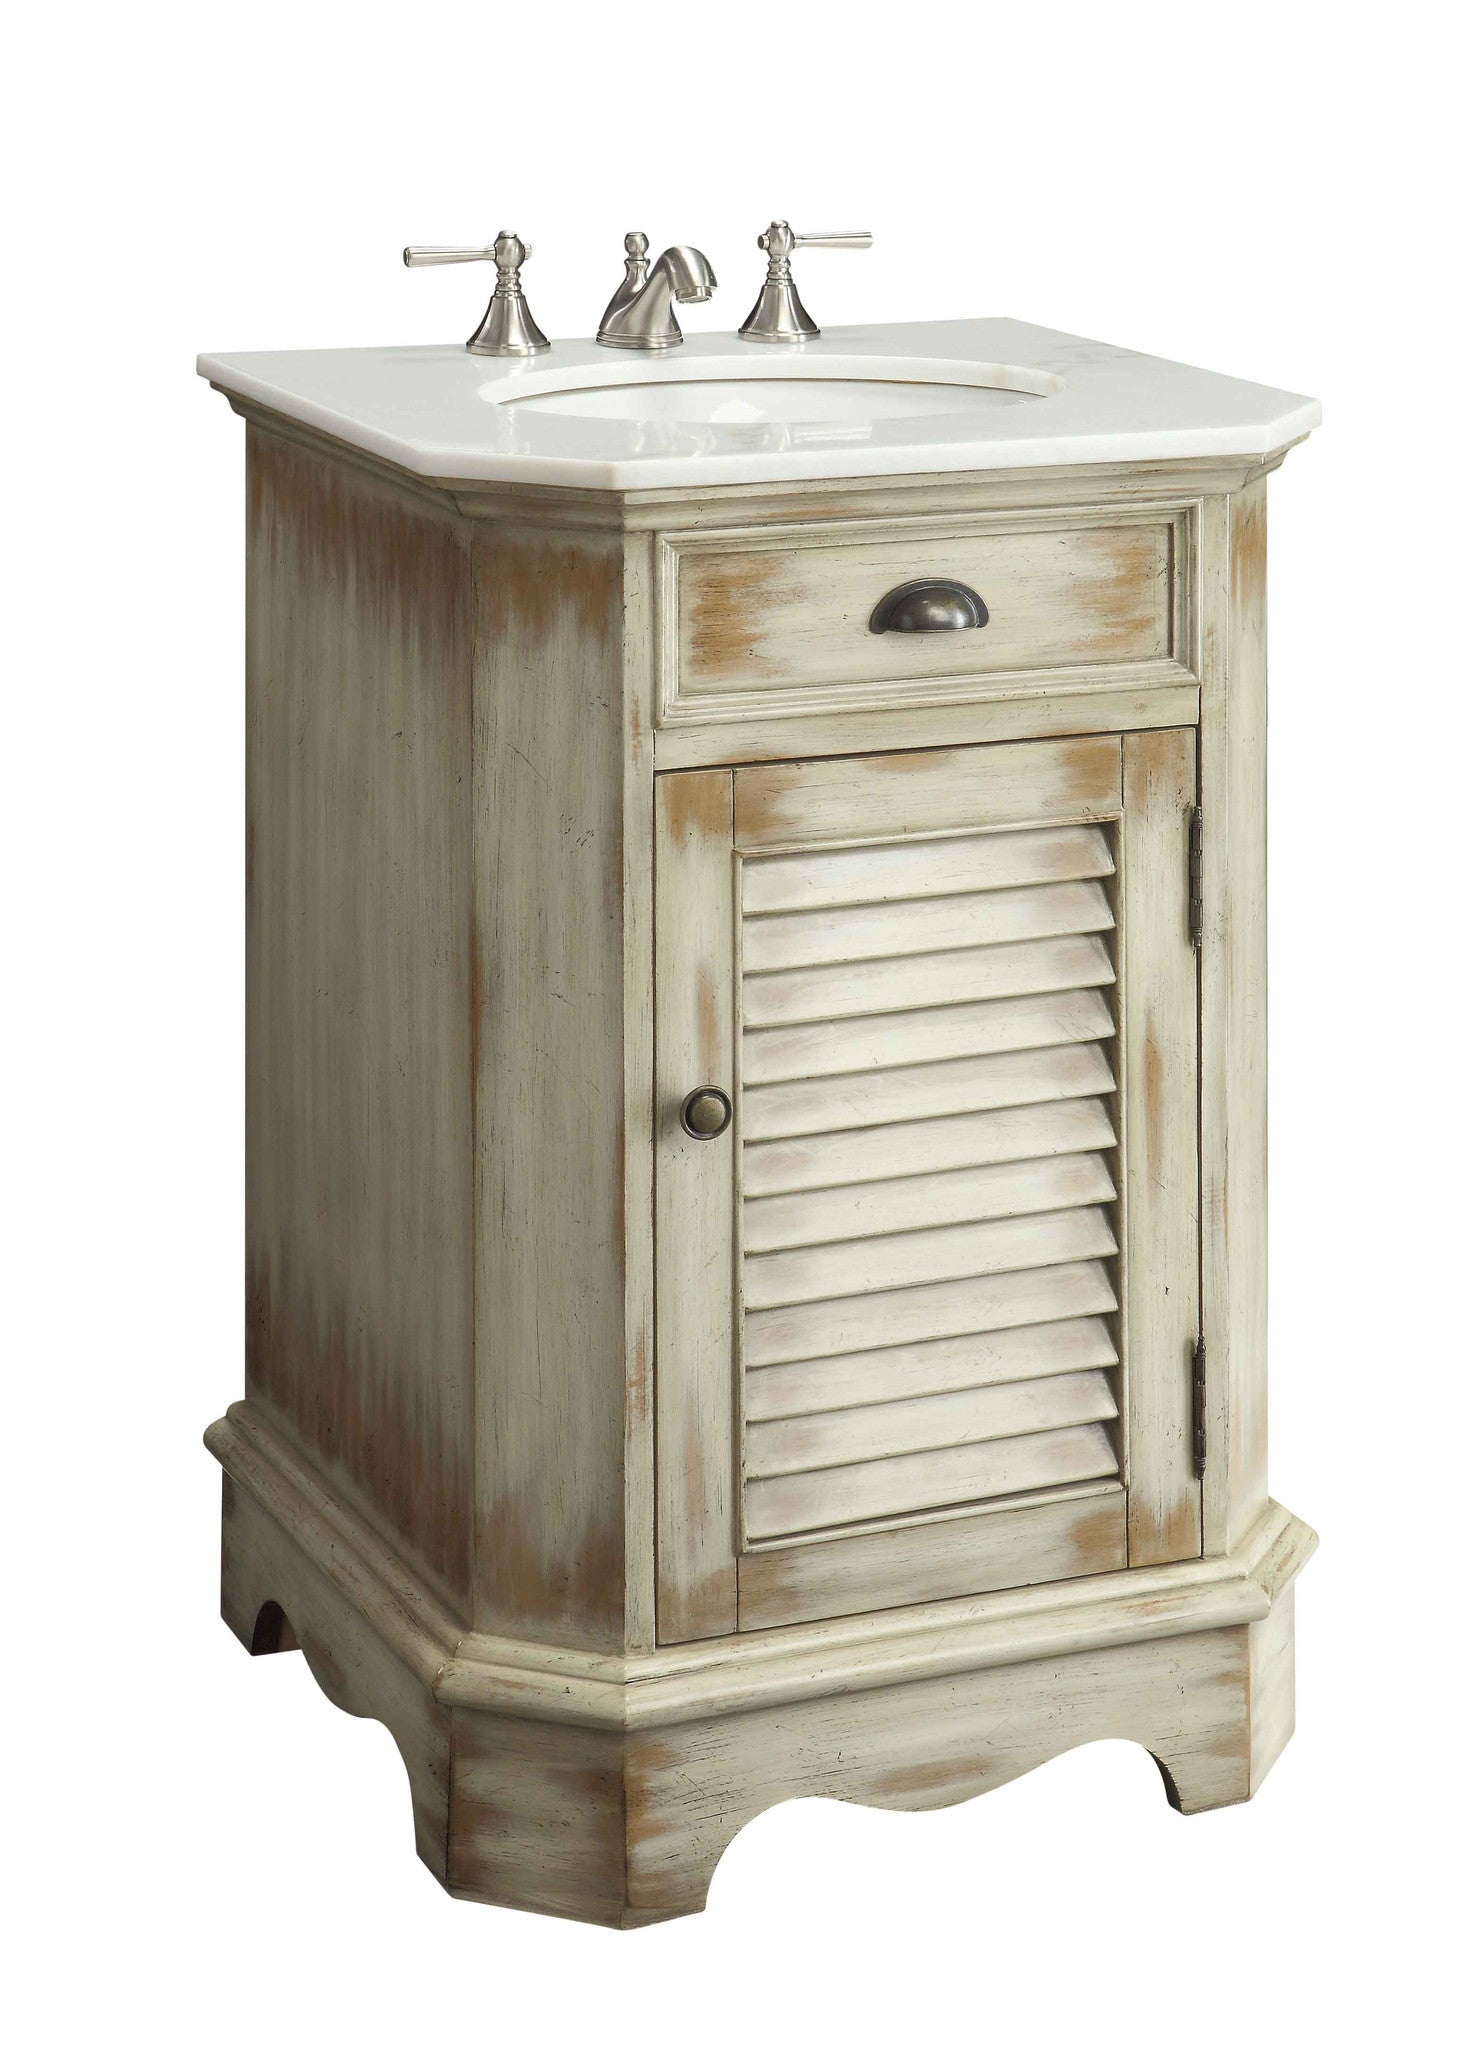 24 benton collection distress look abbeville powder romm - 20 inch bathroom vanity and sink ...